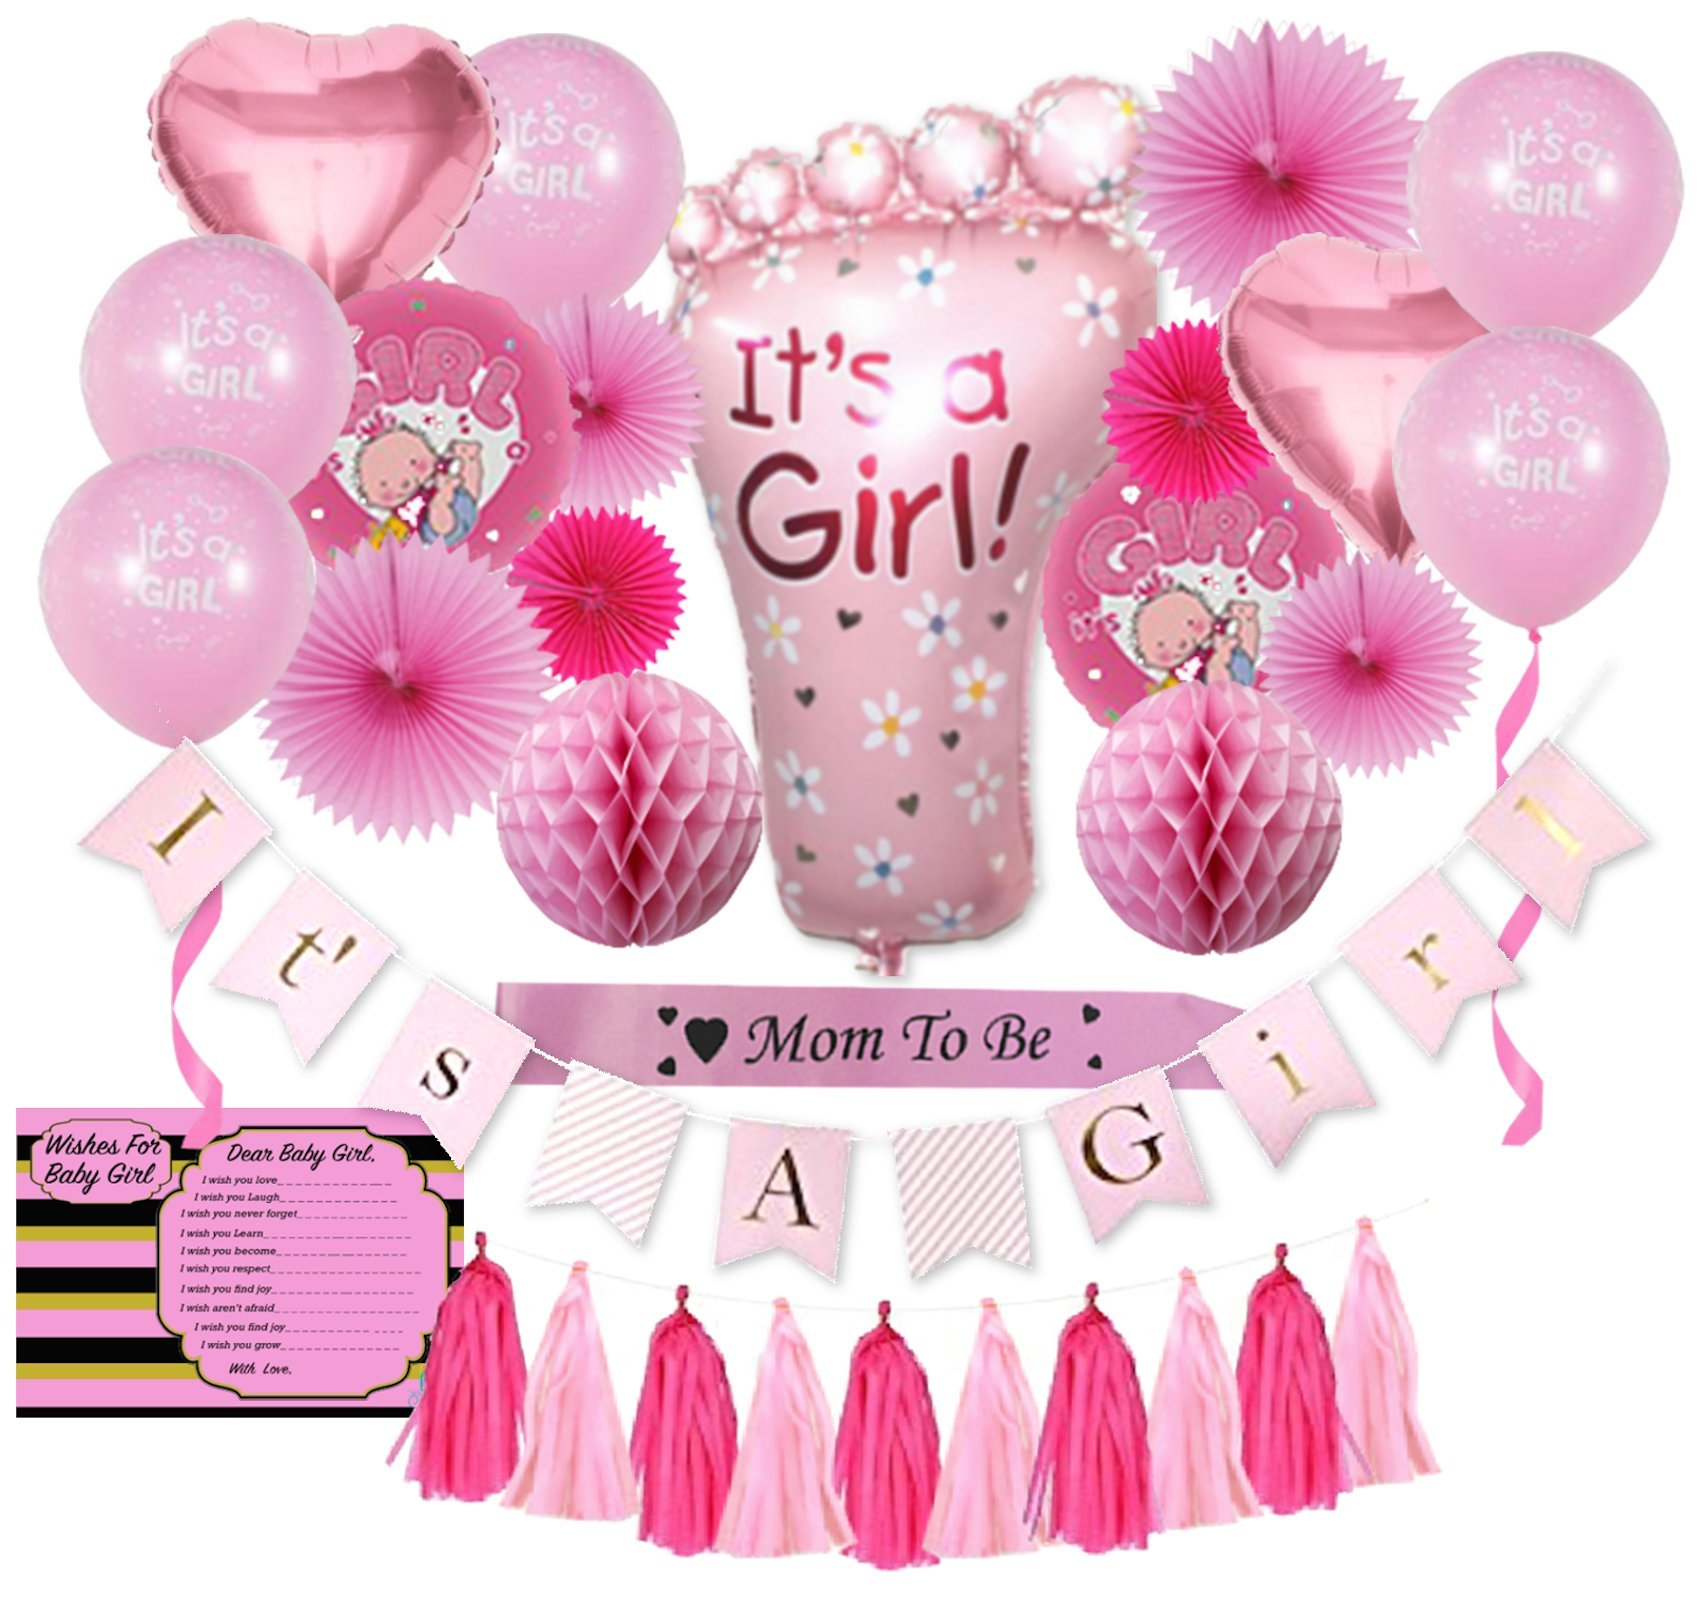 Baby Shower Decorations for Girl   (31 Piece)   Baby Shower Decorations   It's a Girl Banner   Paper Tassels, Fans, Honeycombs   It's a Girl Balloons   Pink Satin Mom to Be Sash